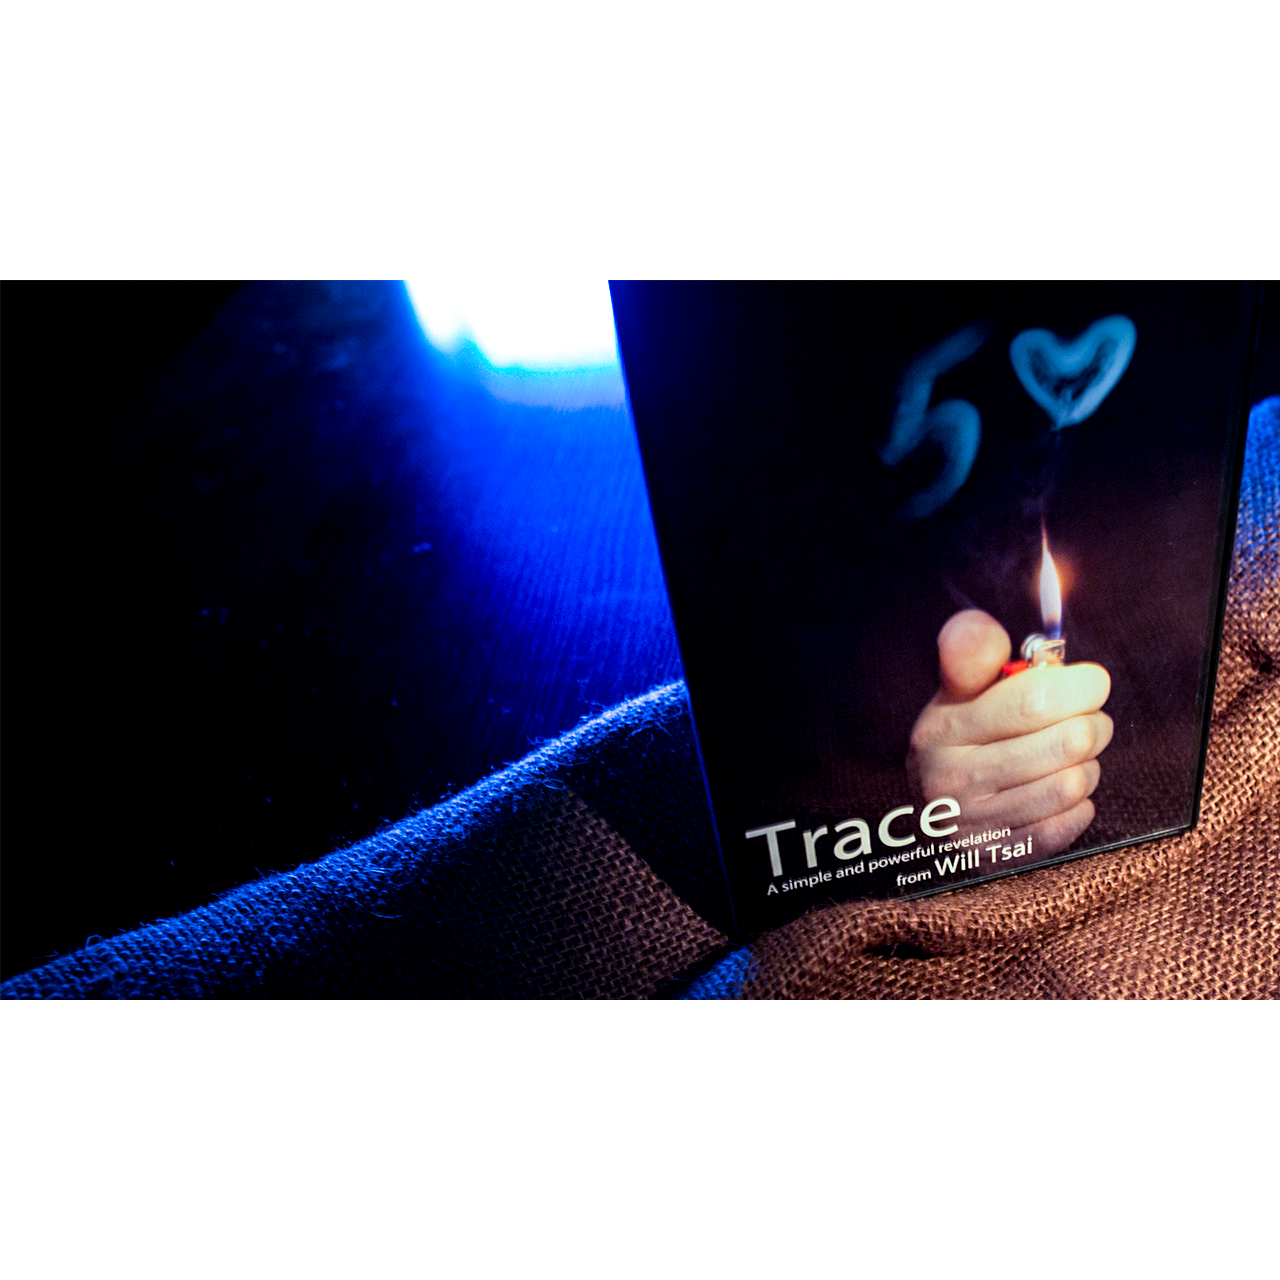 Trace (Props and DVD) by Will Tsai and SansMinds DVD